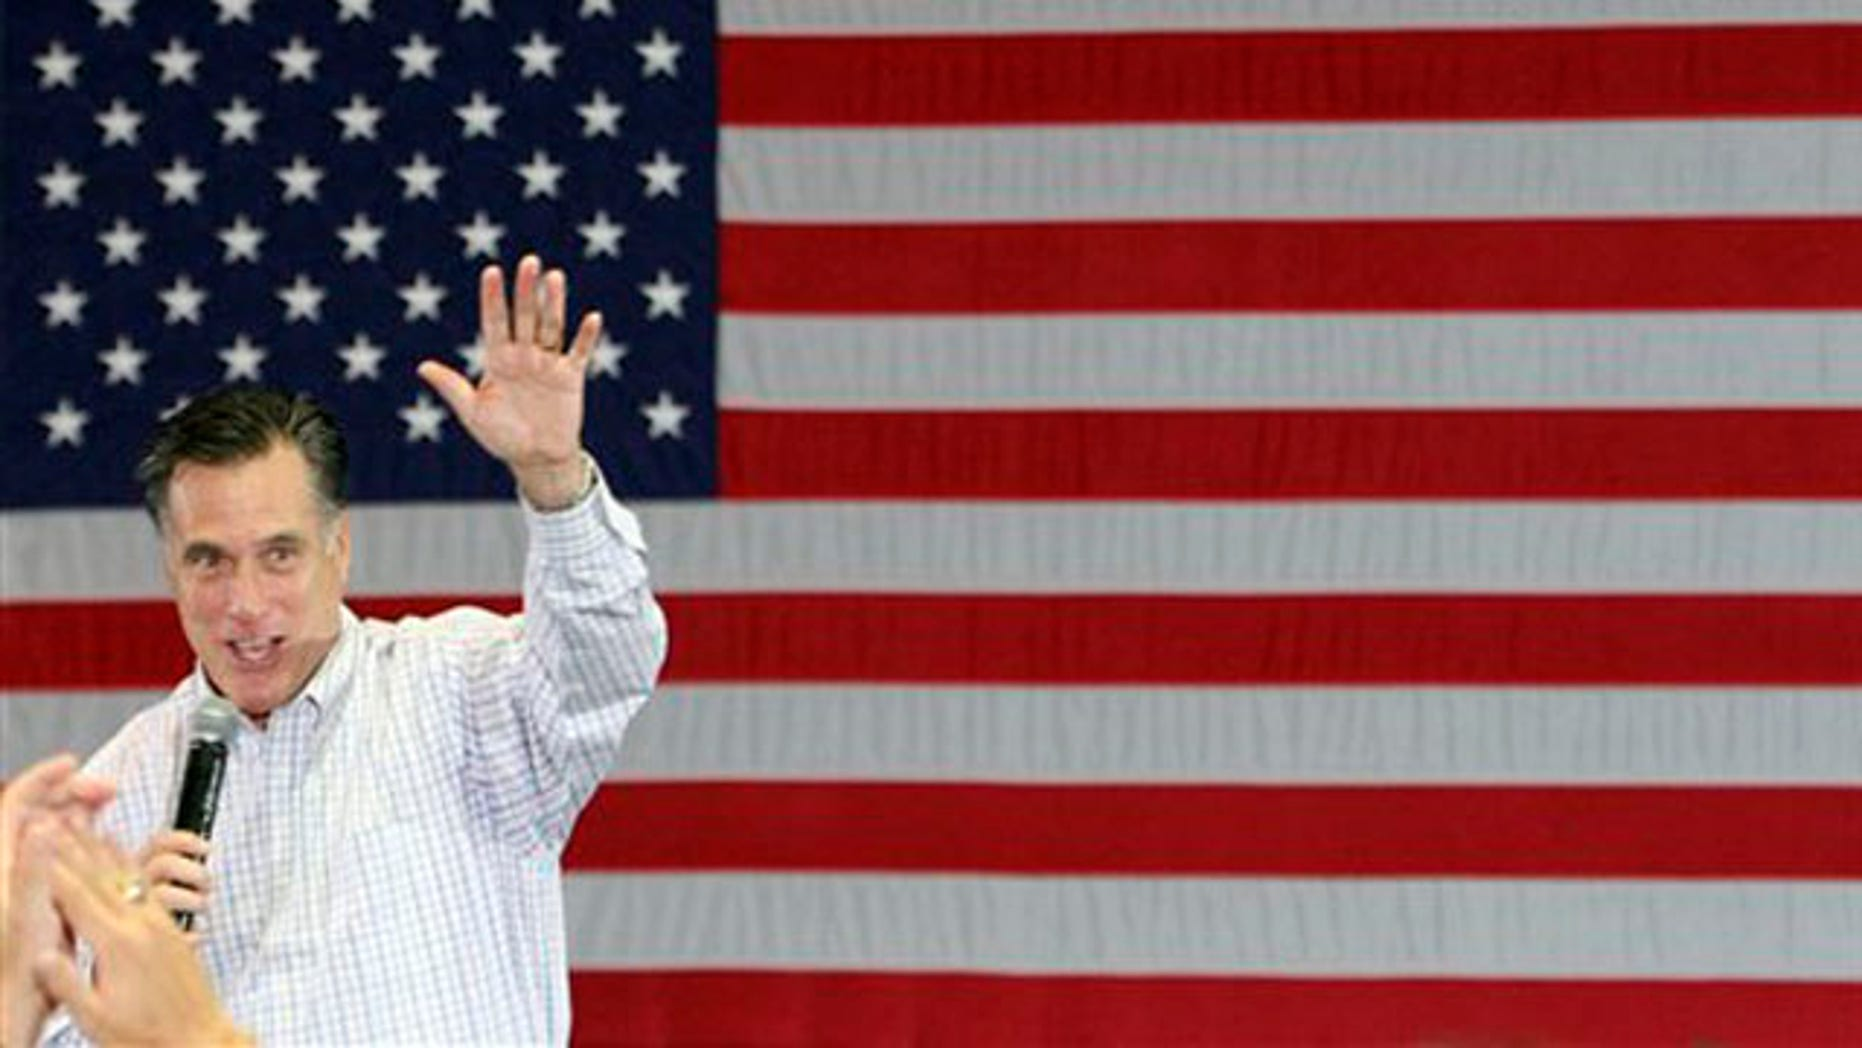 Jan. 12, 2012: Mitt Romney waves after a campaign stop at the Palm Beach Convention Center in West Palm Beach, Fla.